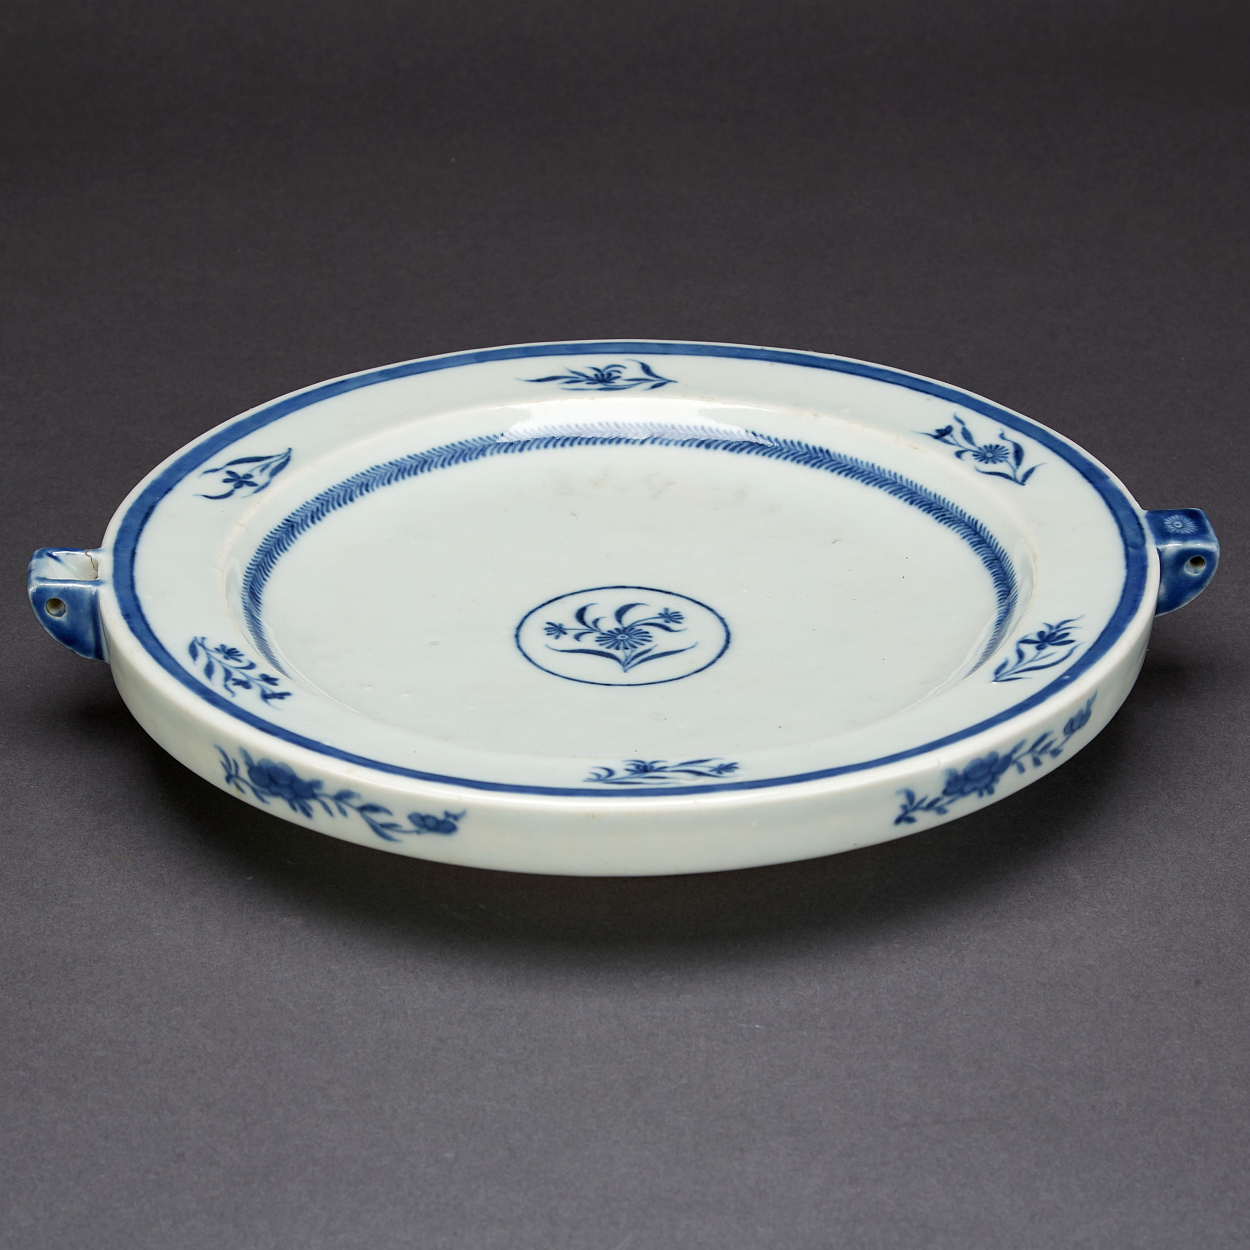 A Blue and White Hot Water Dish